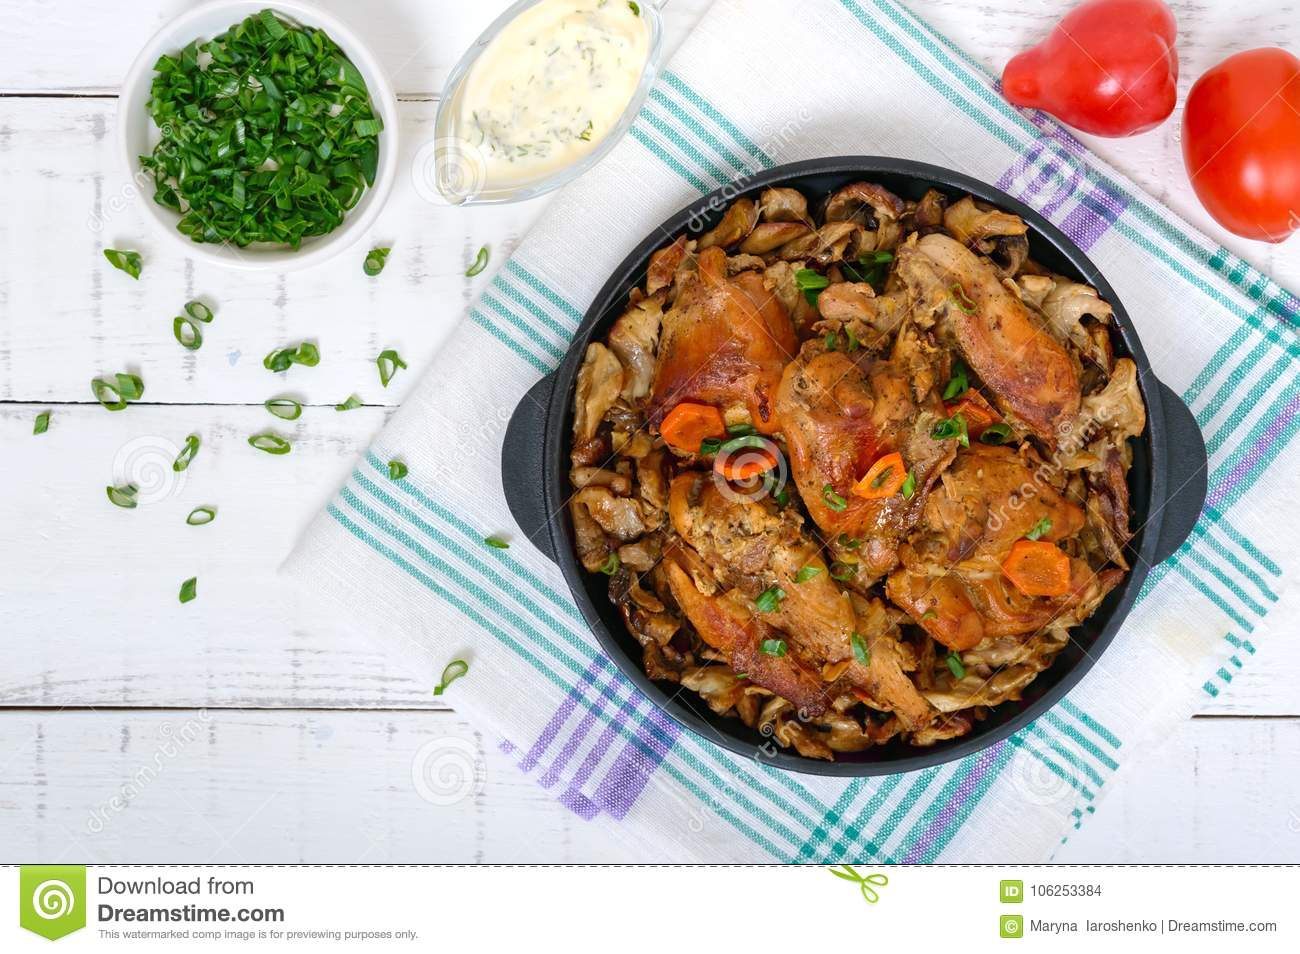 Pieces of fried rabbit with forest mushrooms on a cast-iron frying pan